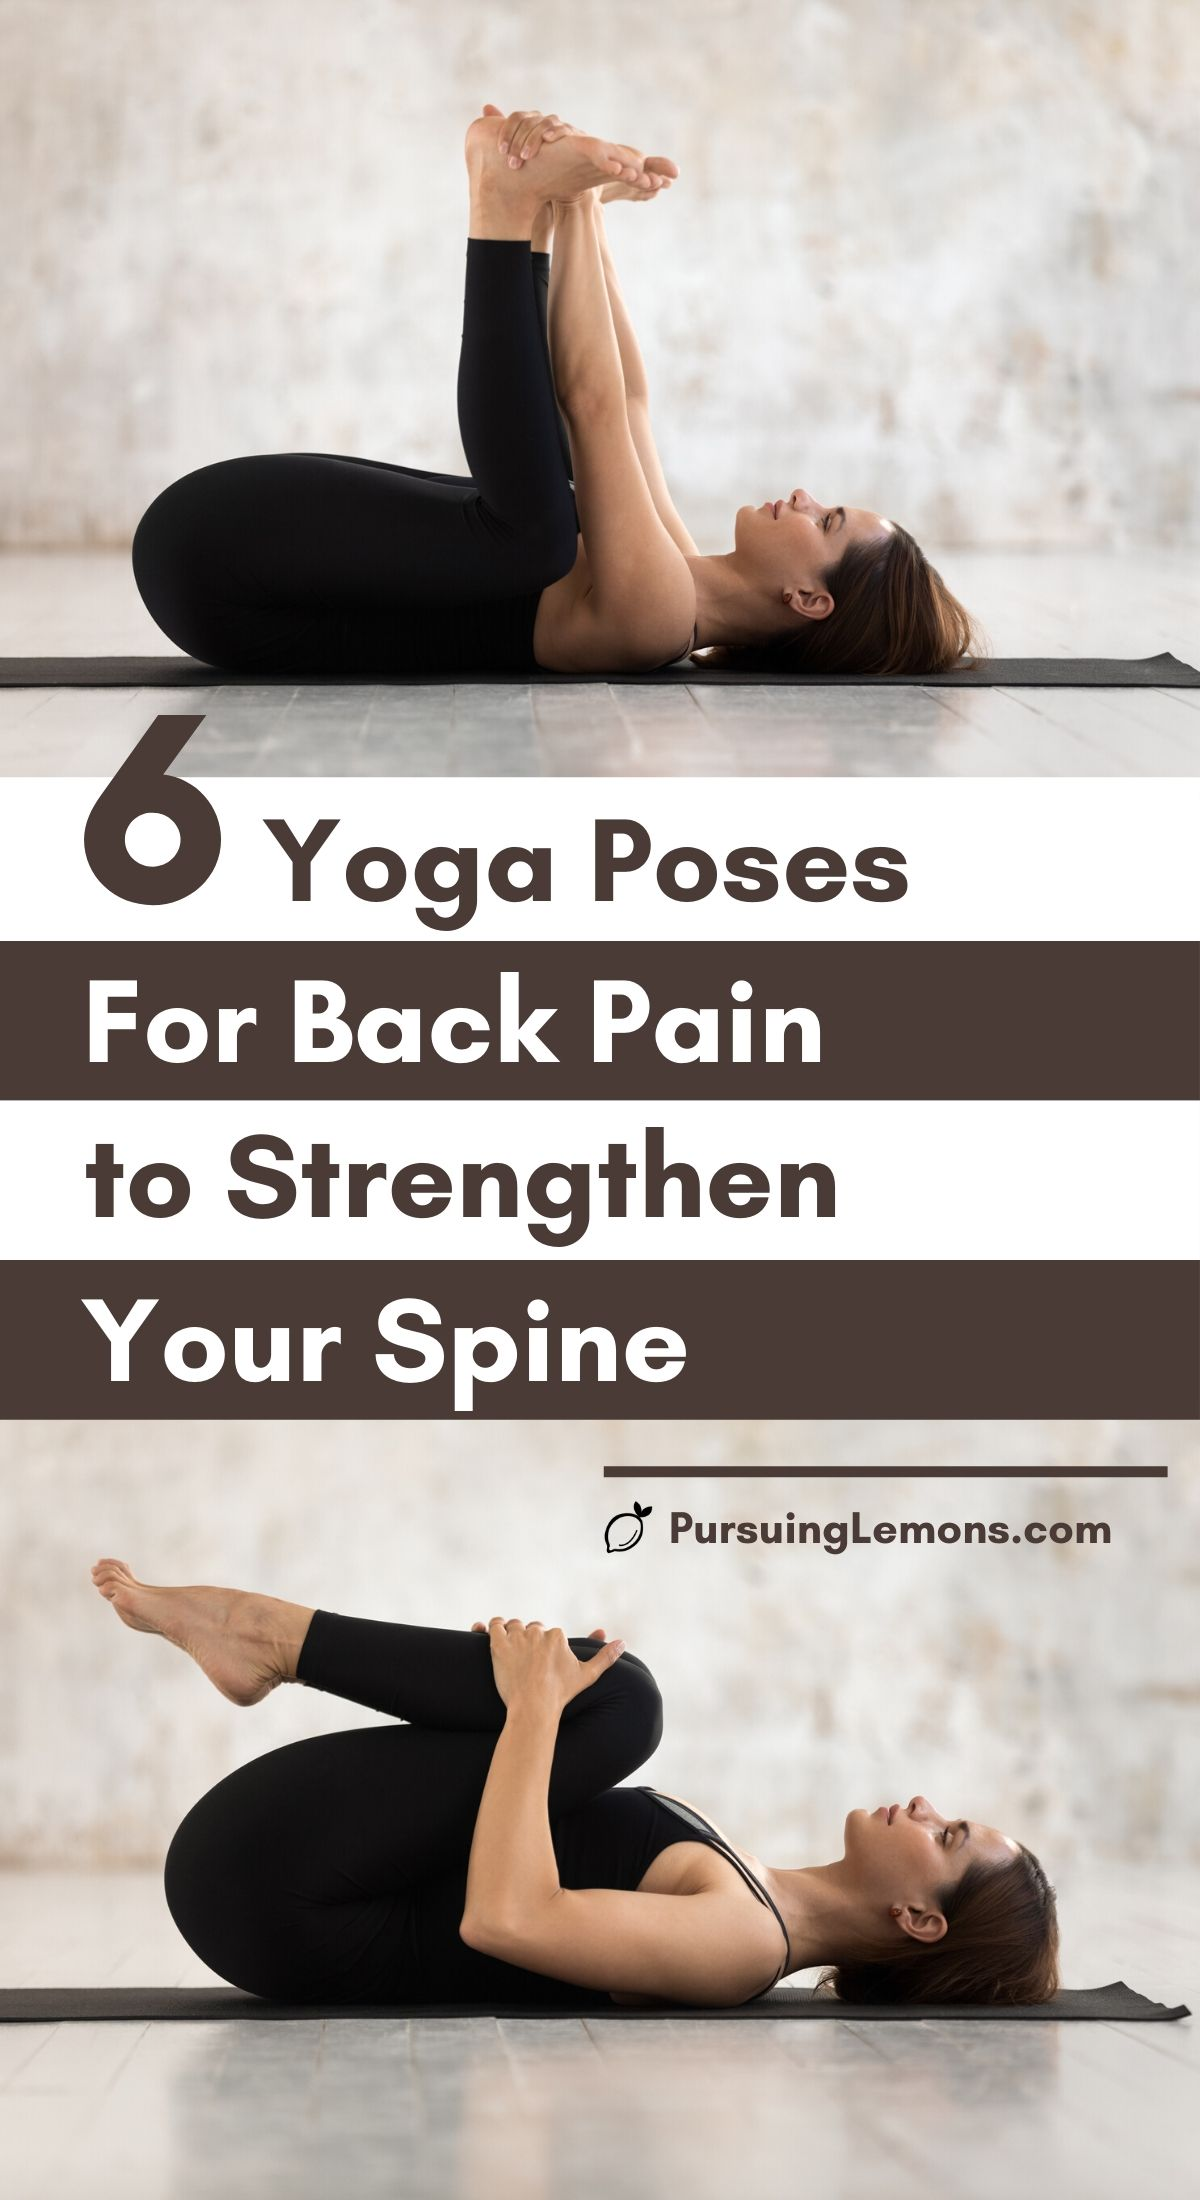 Yoga for Back Pain: 6 Poses to Strengthen Your Spine | Always have to deal with upper & lower back pain? Try this yoga sequence to relieve your back pain. These 6 yoga poses will also improve your back flexibility while strengthening your spine. #yogaposes #yogaforbackpain #yogastretches #yoga